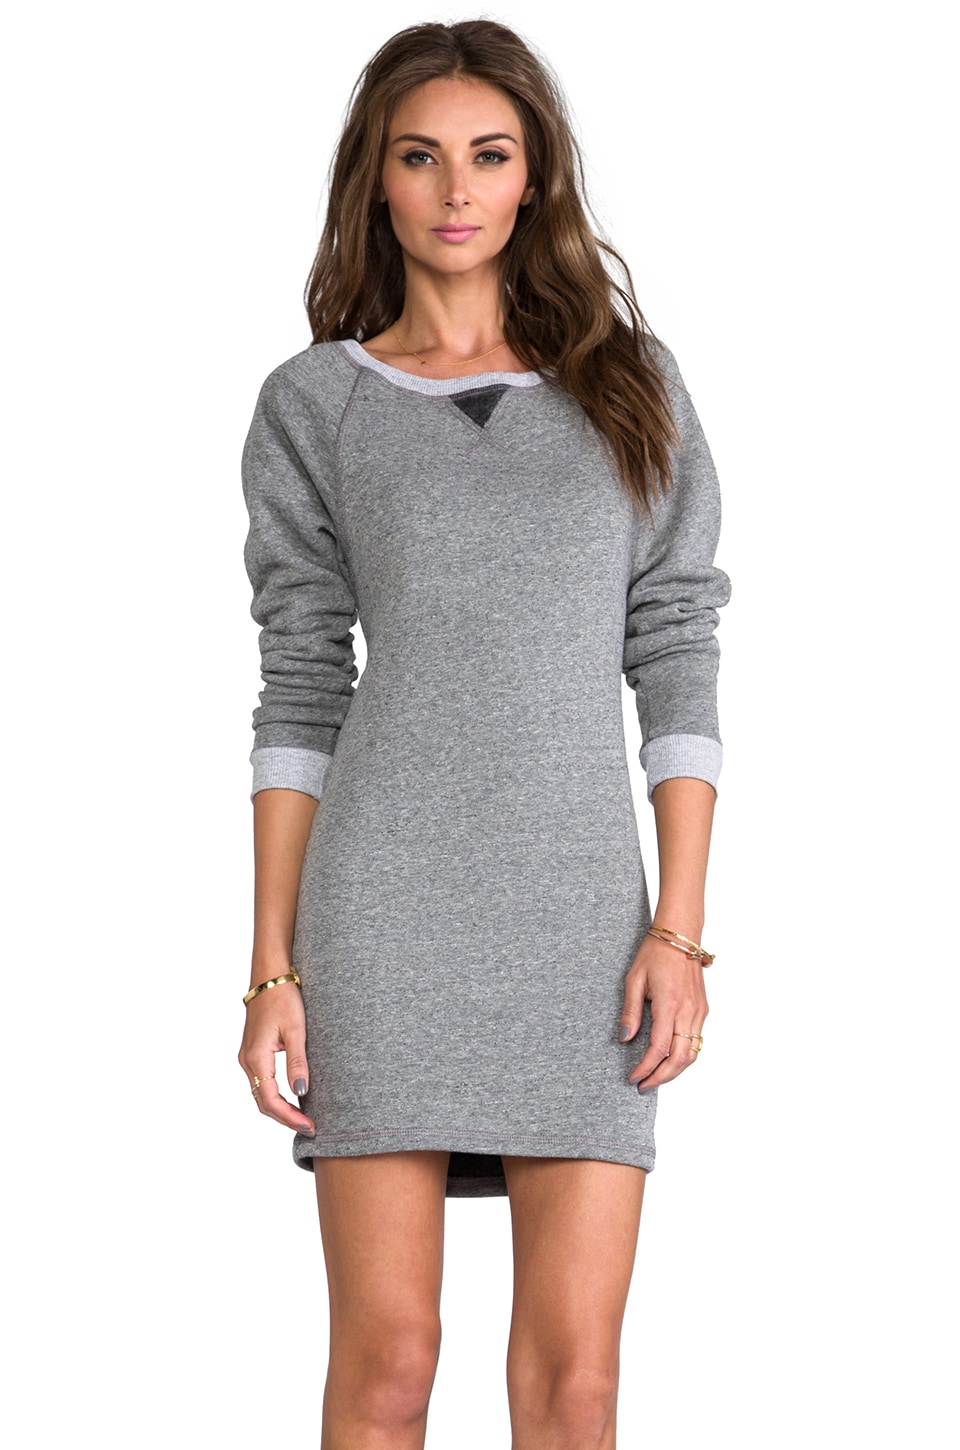 Feel the Piece The Shopper Sweatshirt Dress in Charcoal